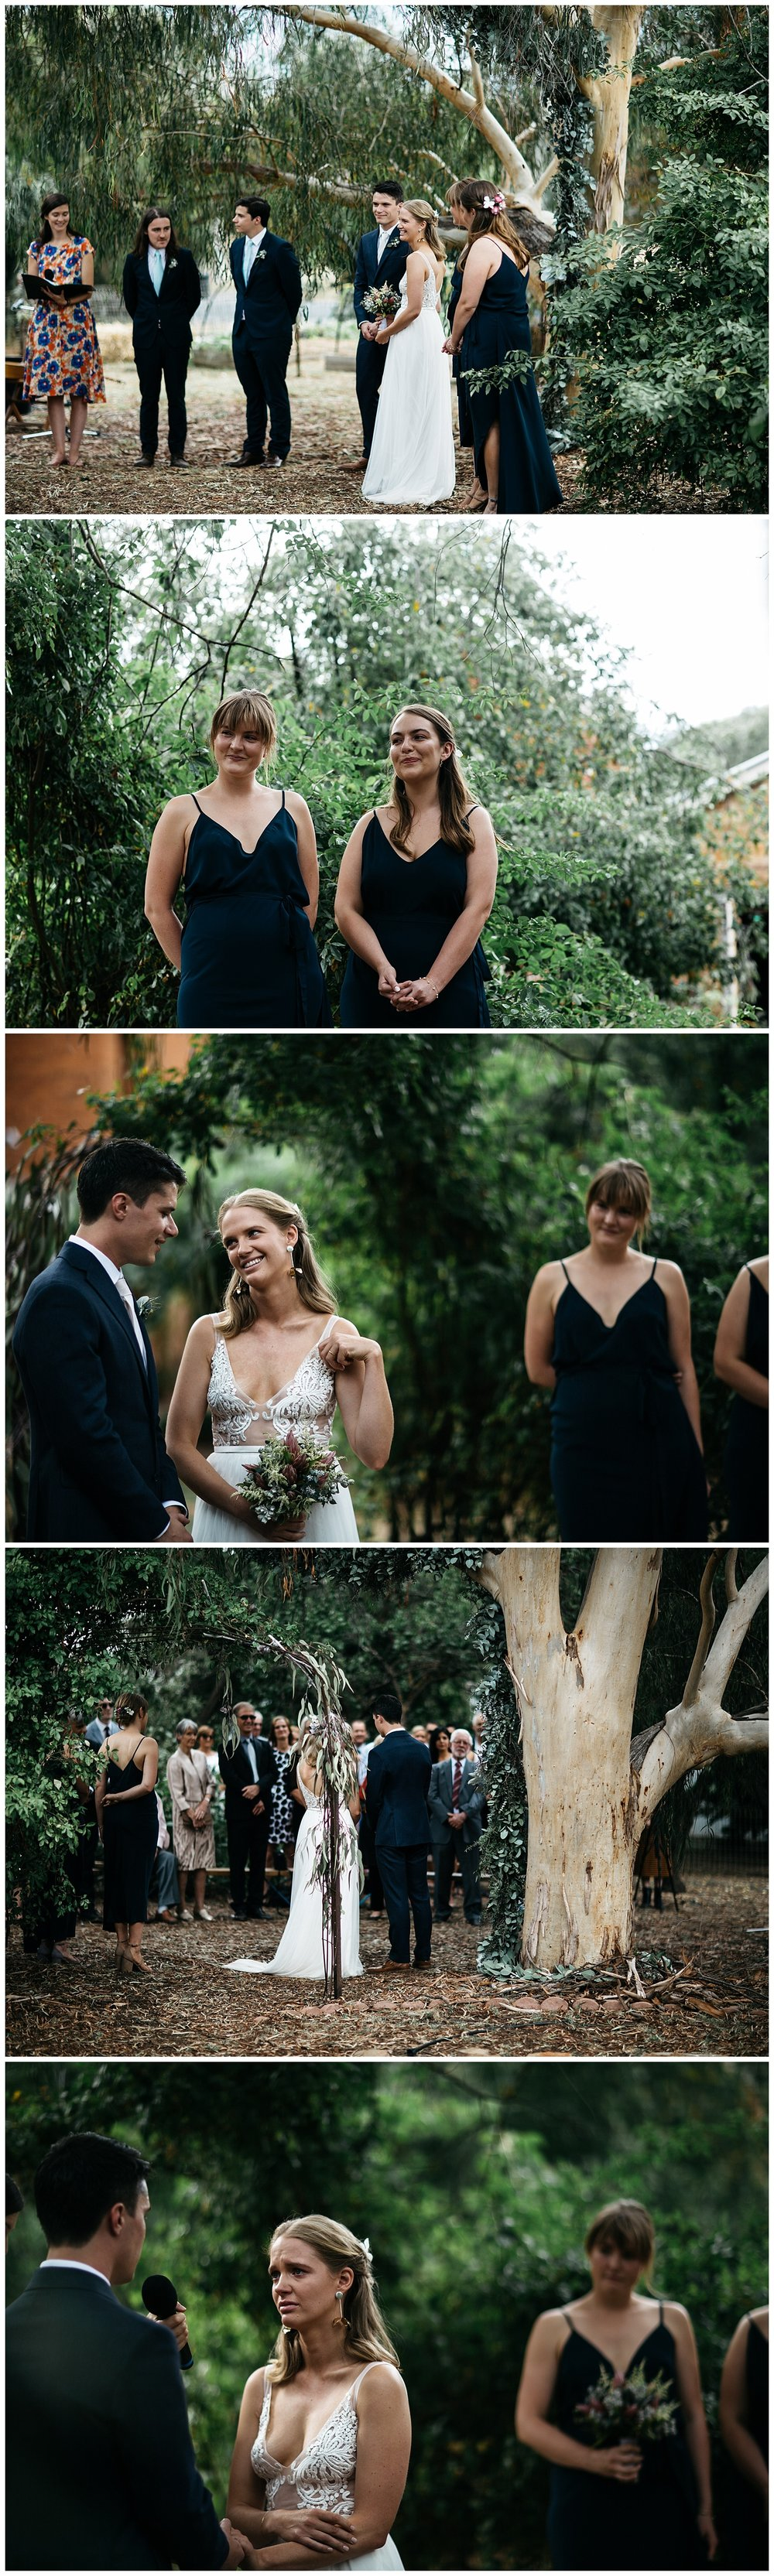 Castelmaine_Melbourne_Wedding_Photographer_0020.jpg